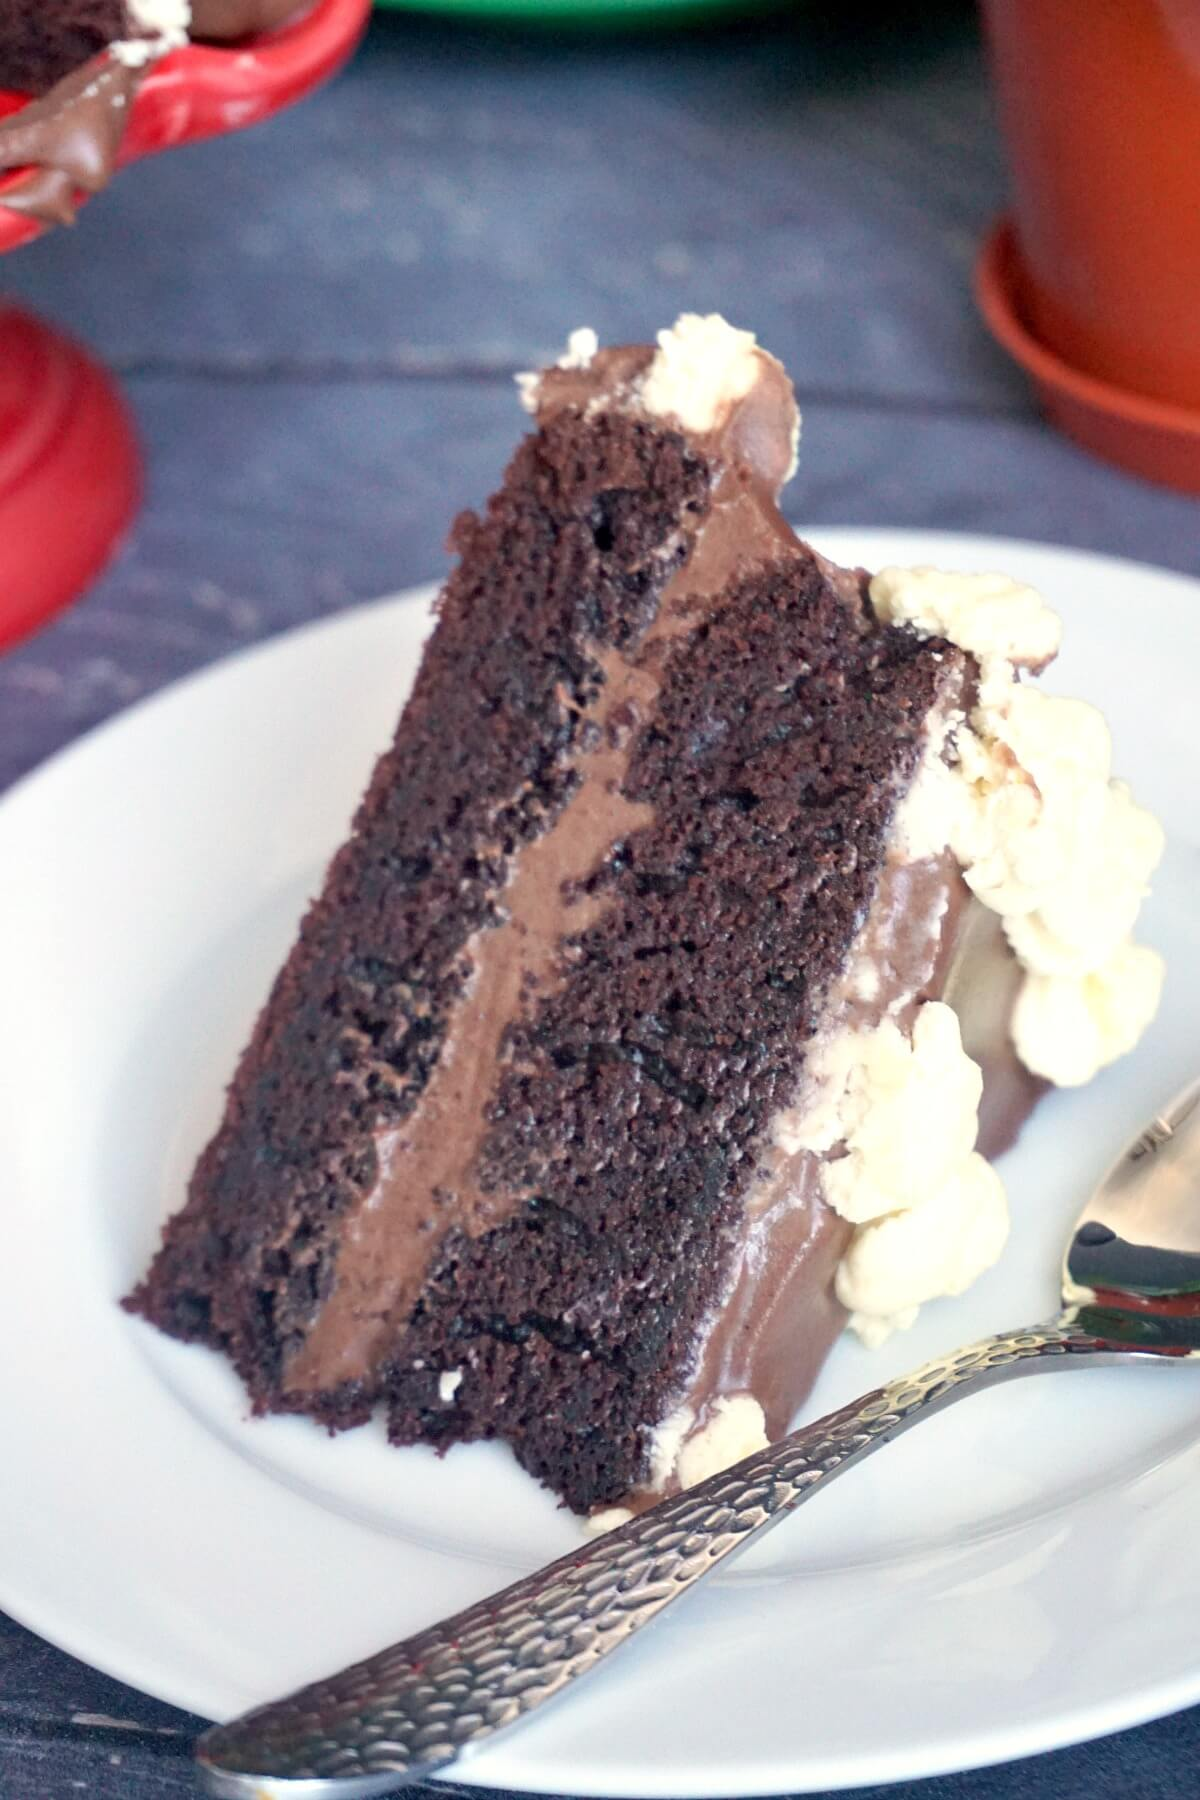 Close-up shoot of a slice of chocolate cake on a white plate